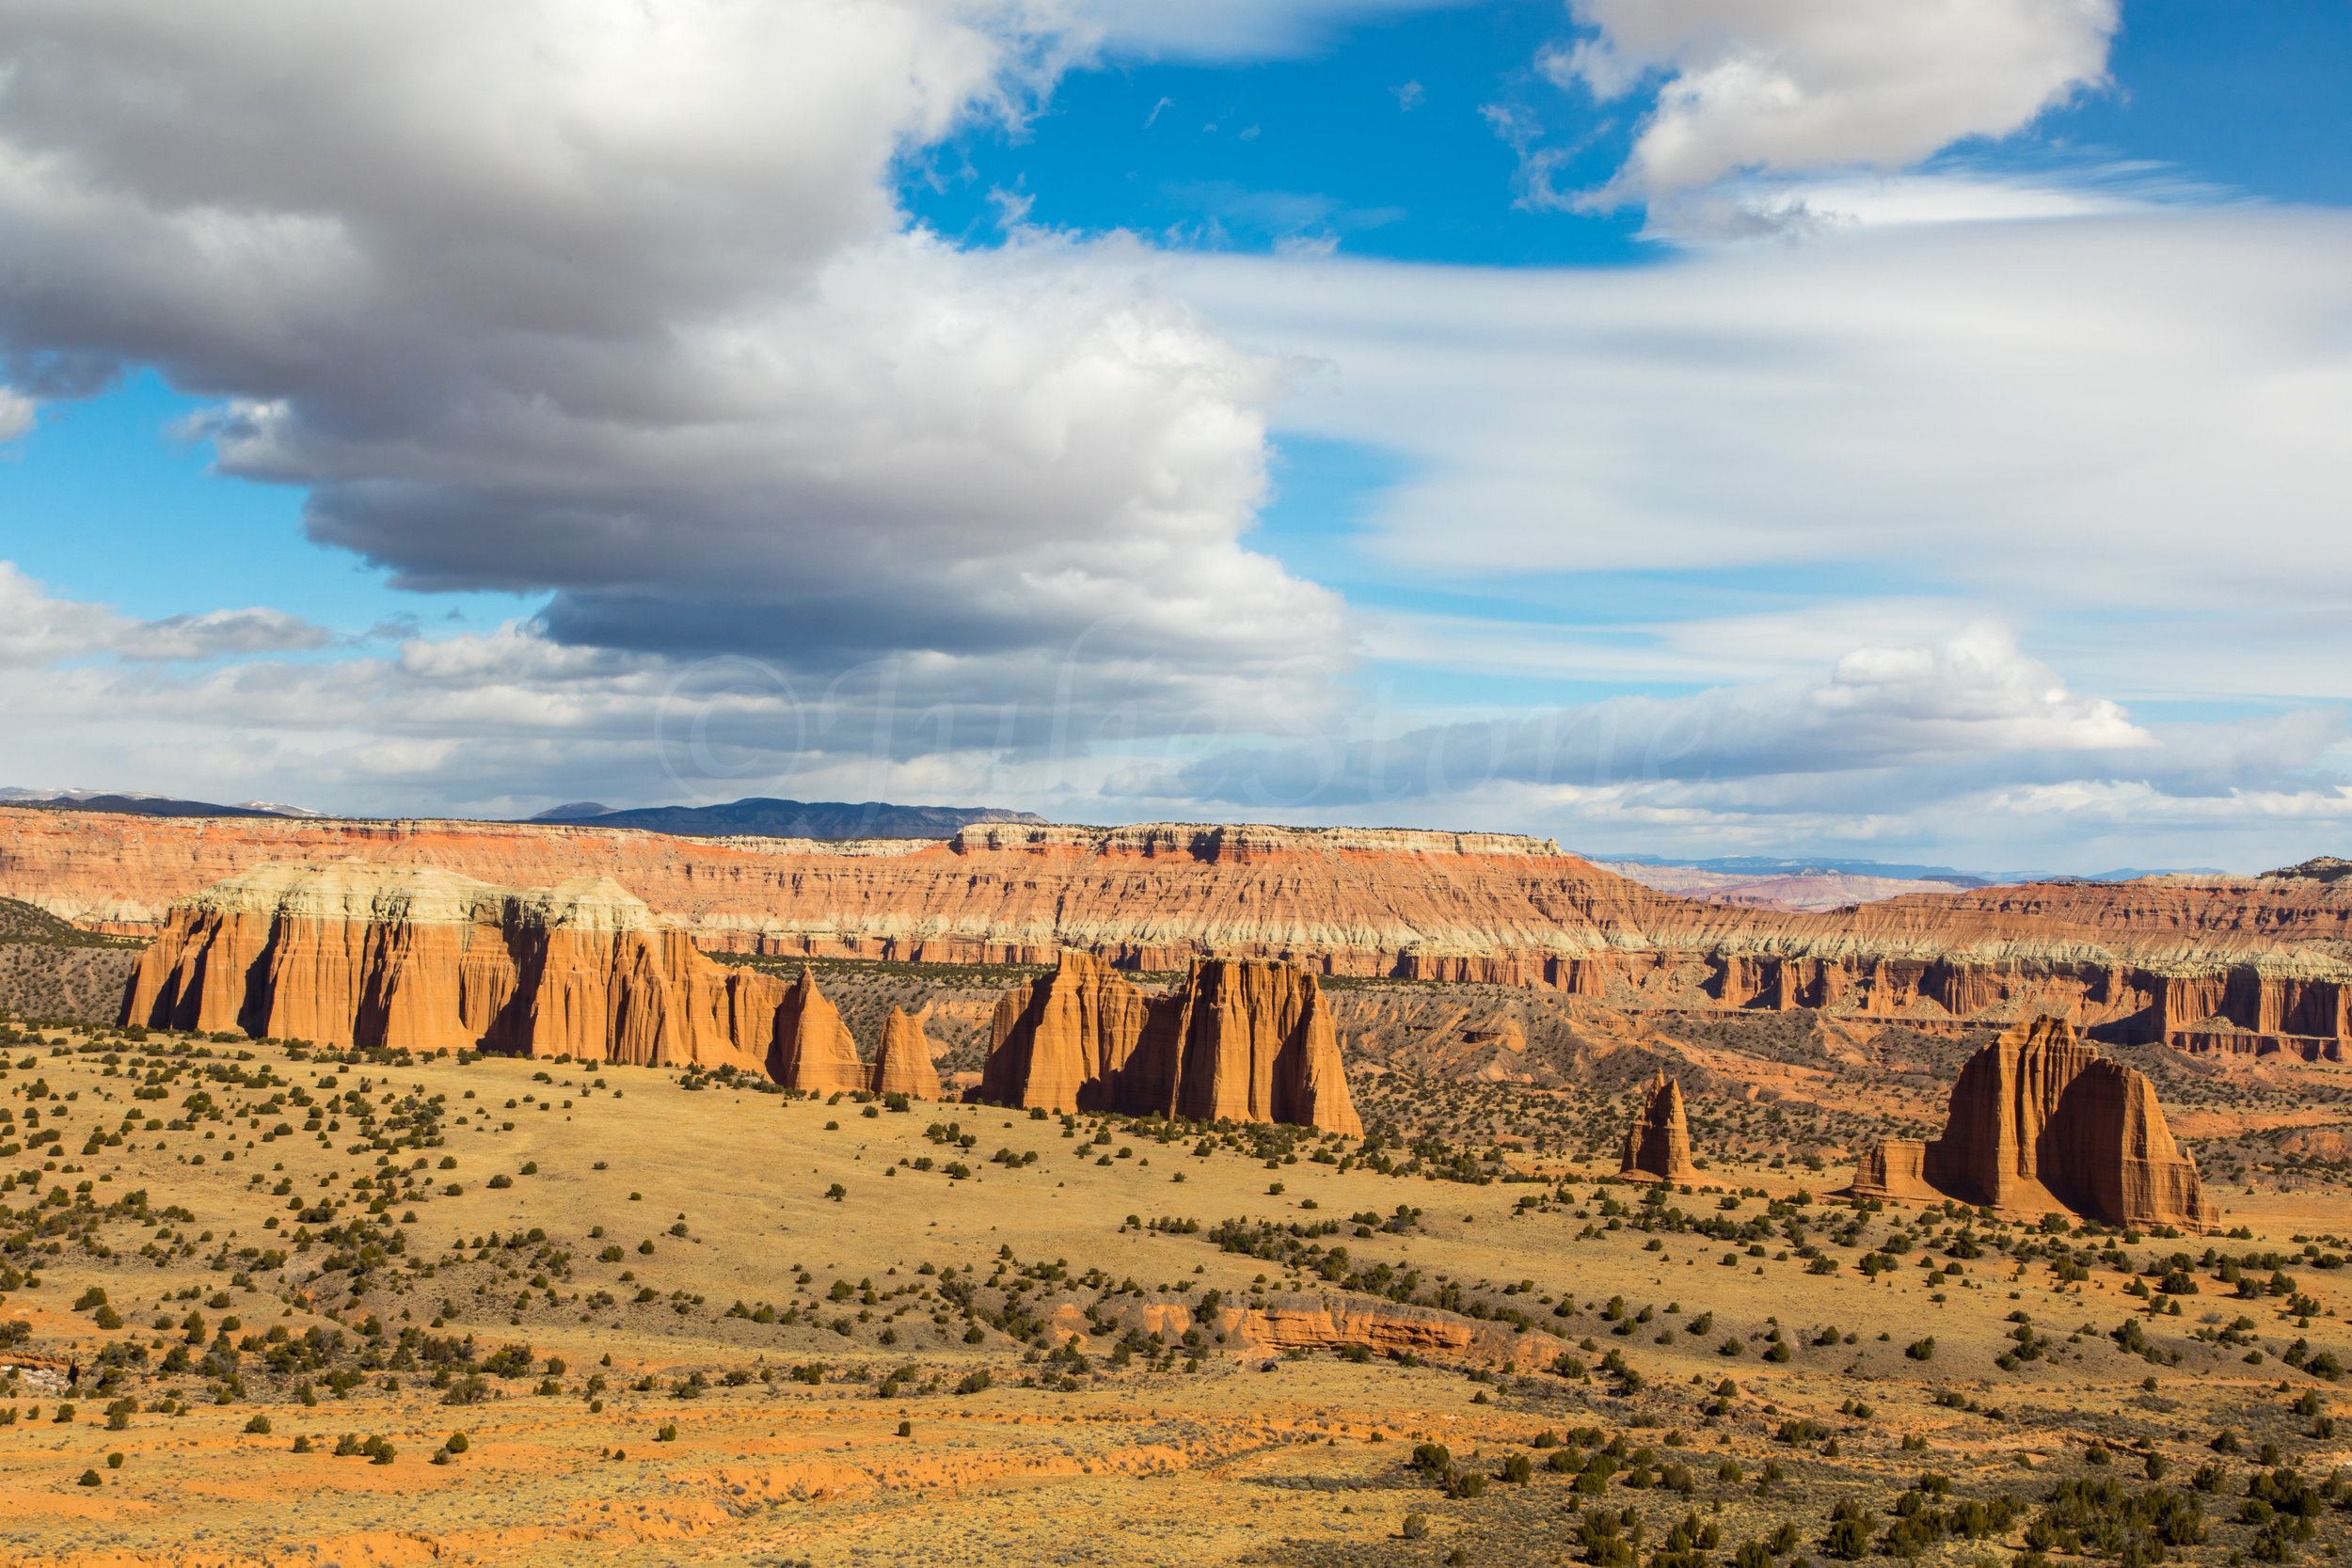 Capitol Reef National Park, Image # 1607